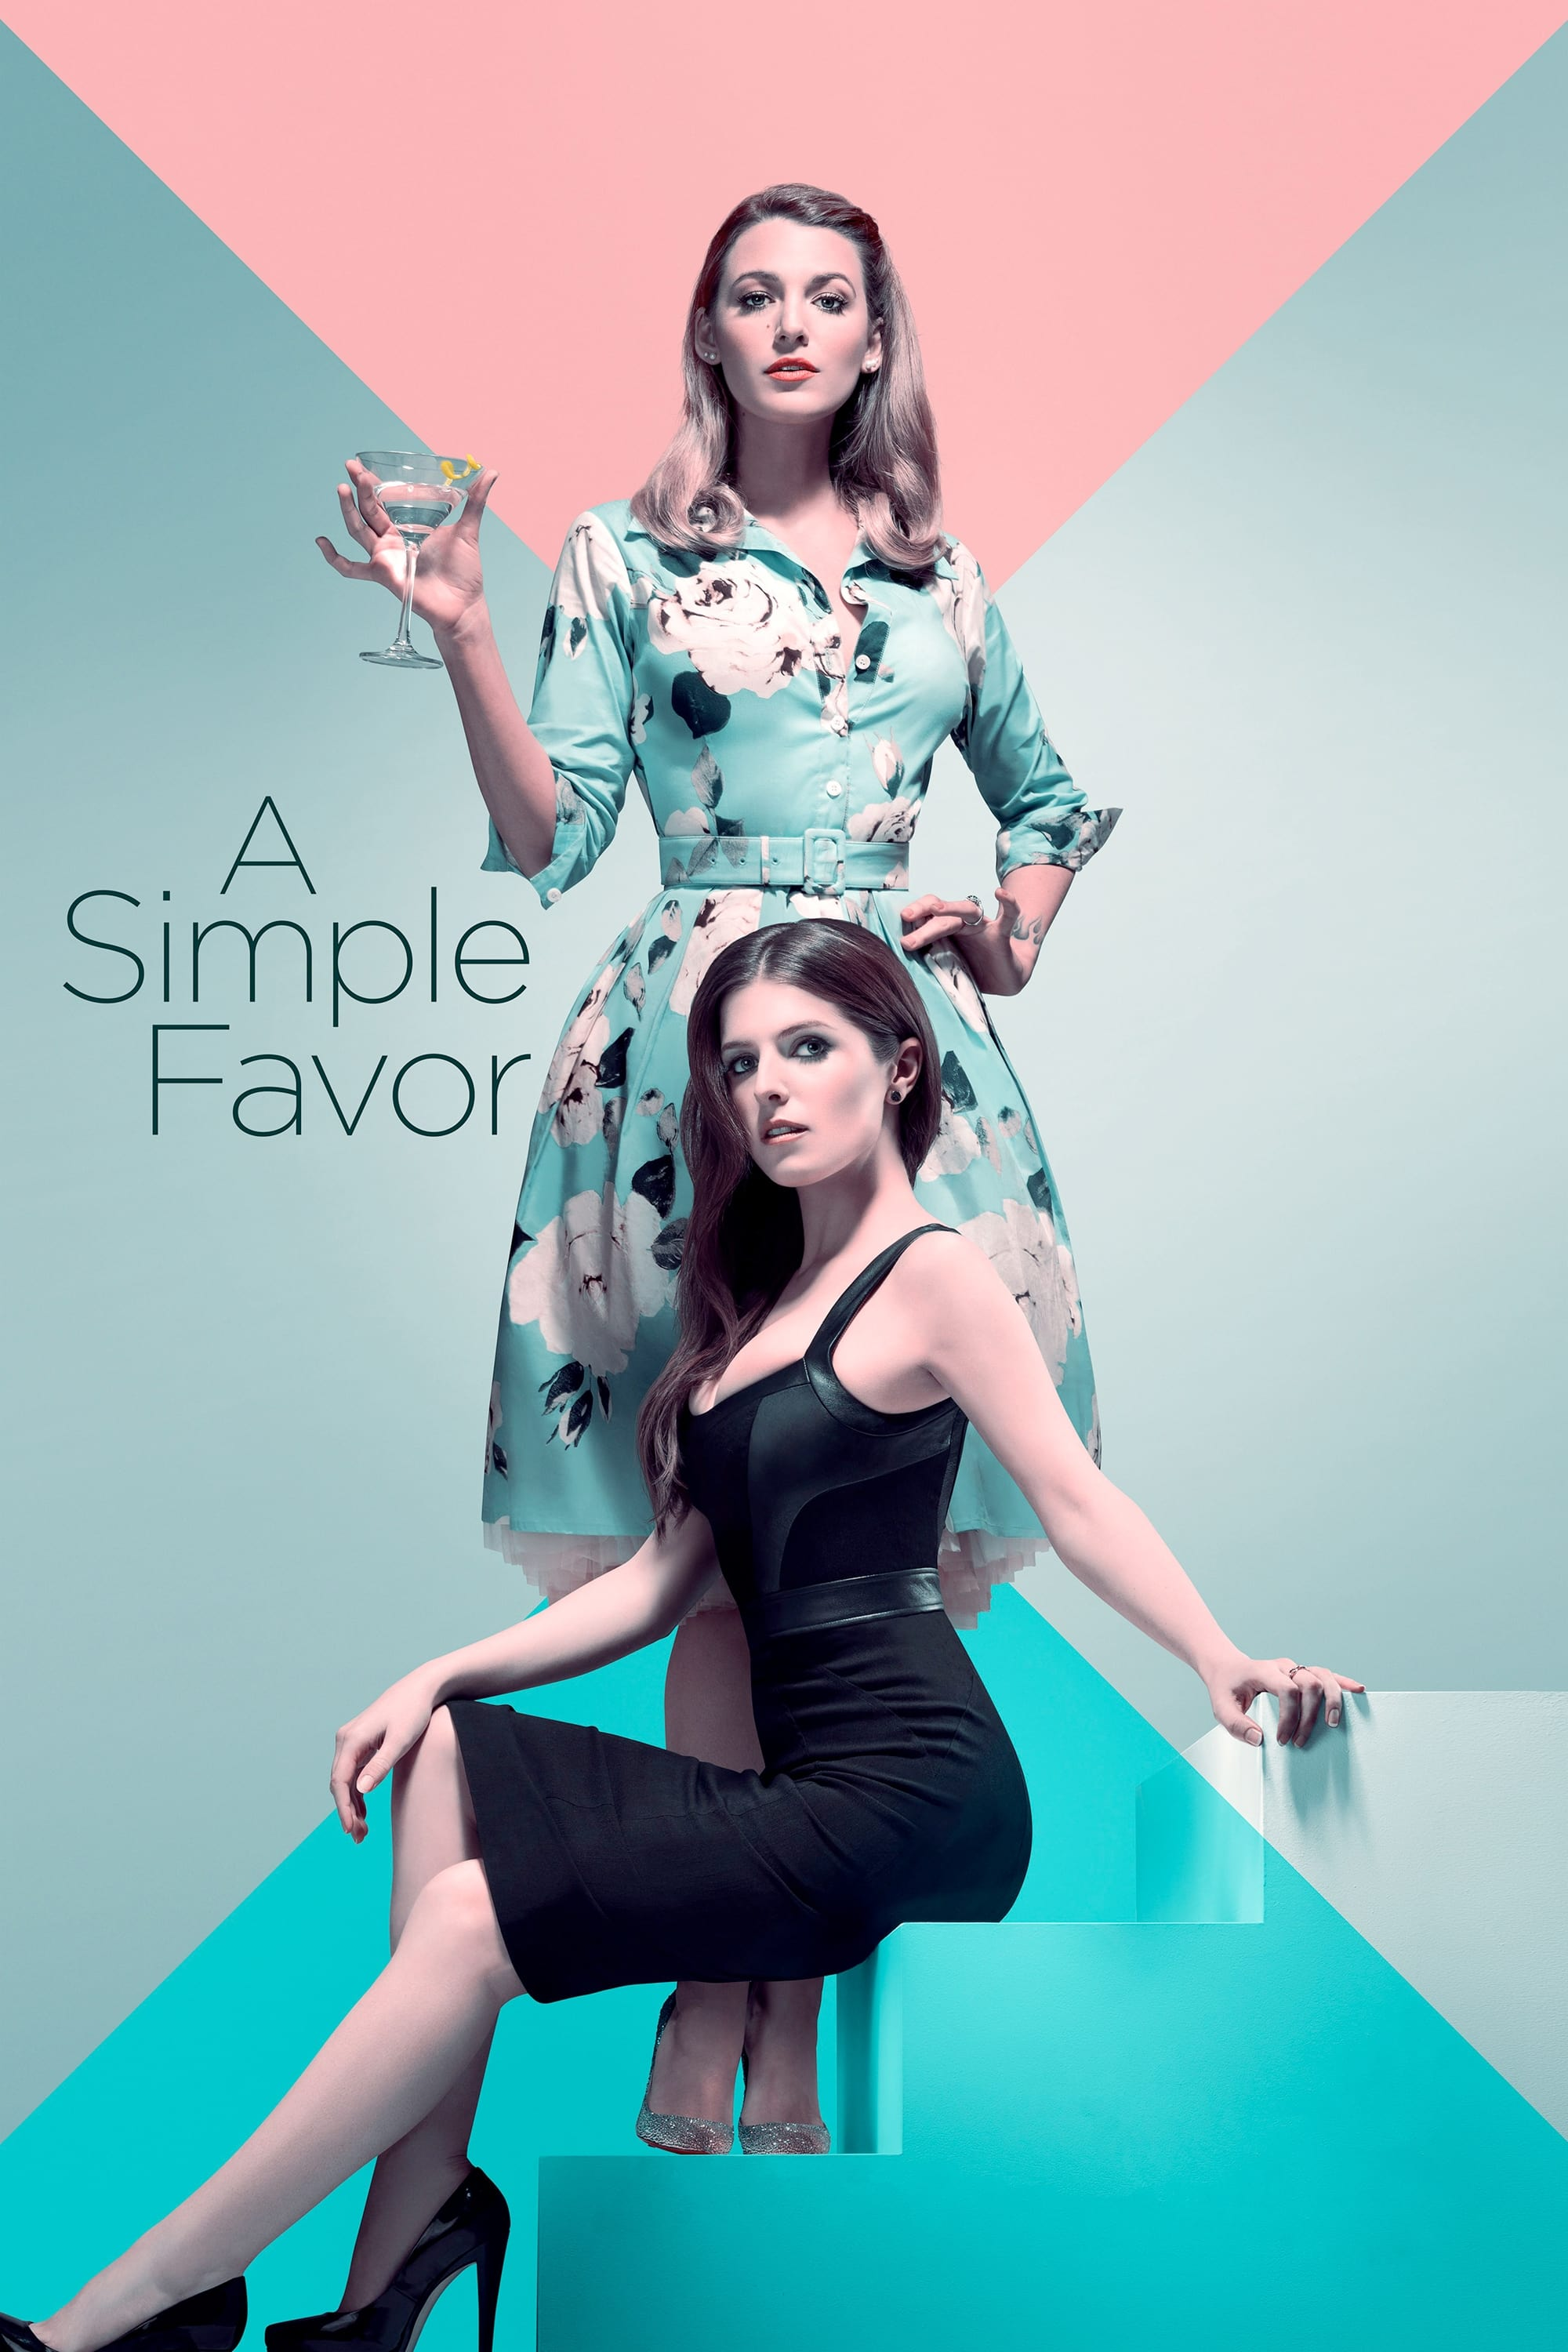 watch A Simple Favor 2018 online free